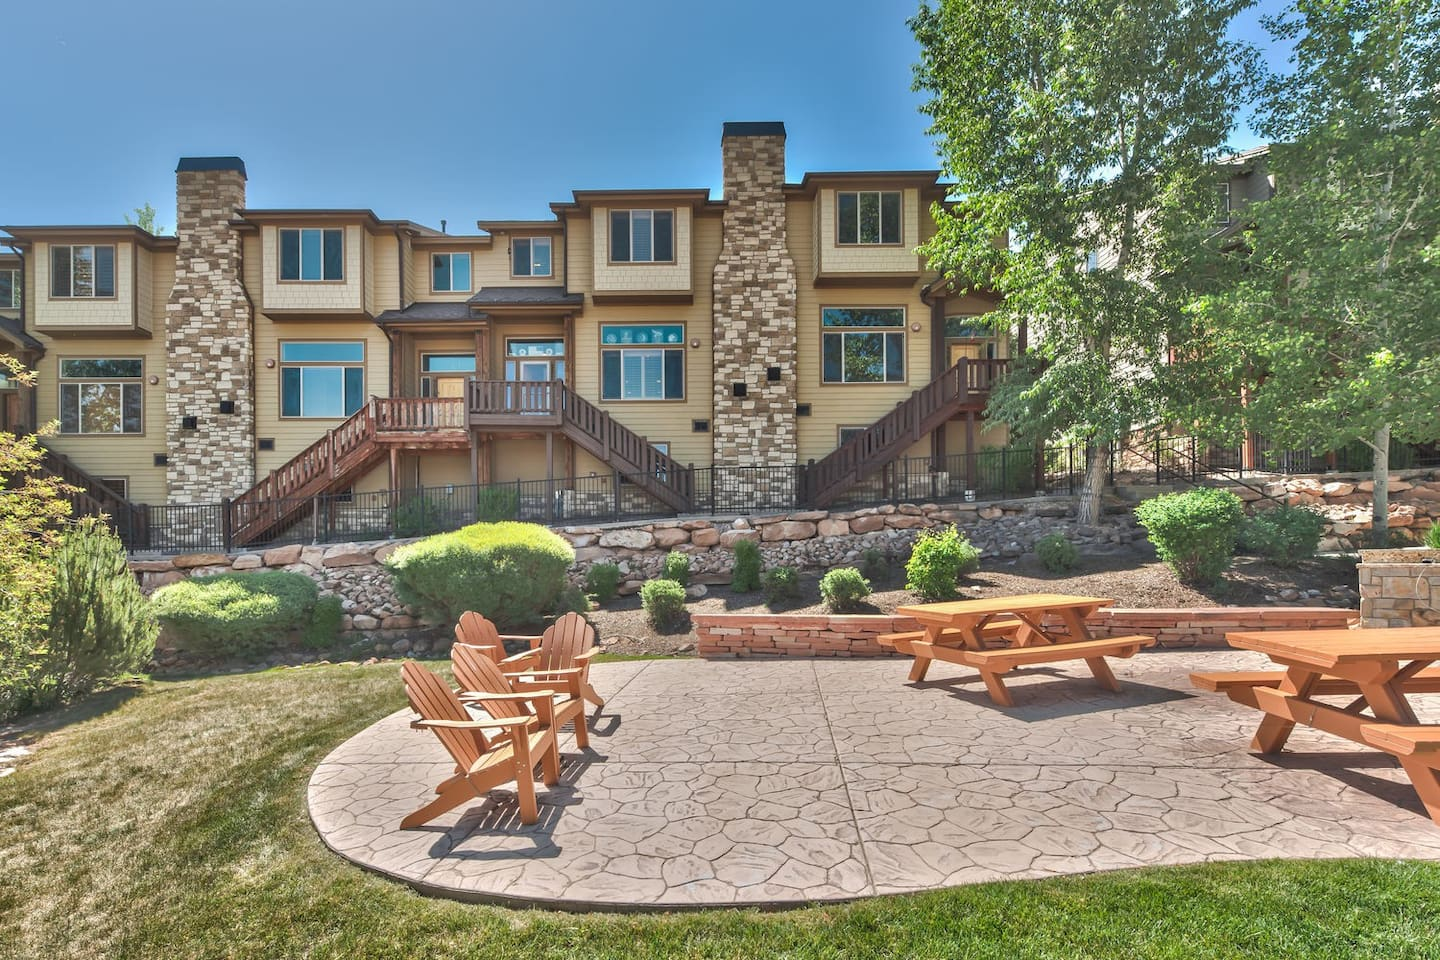 Park City Bear Hollow Haven - 3 Bedroom, 3.5 Bath - Sleeps 11 - Private Hot Tub